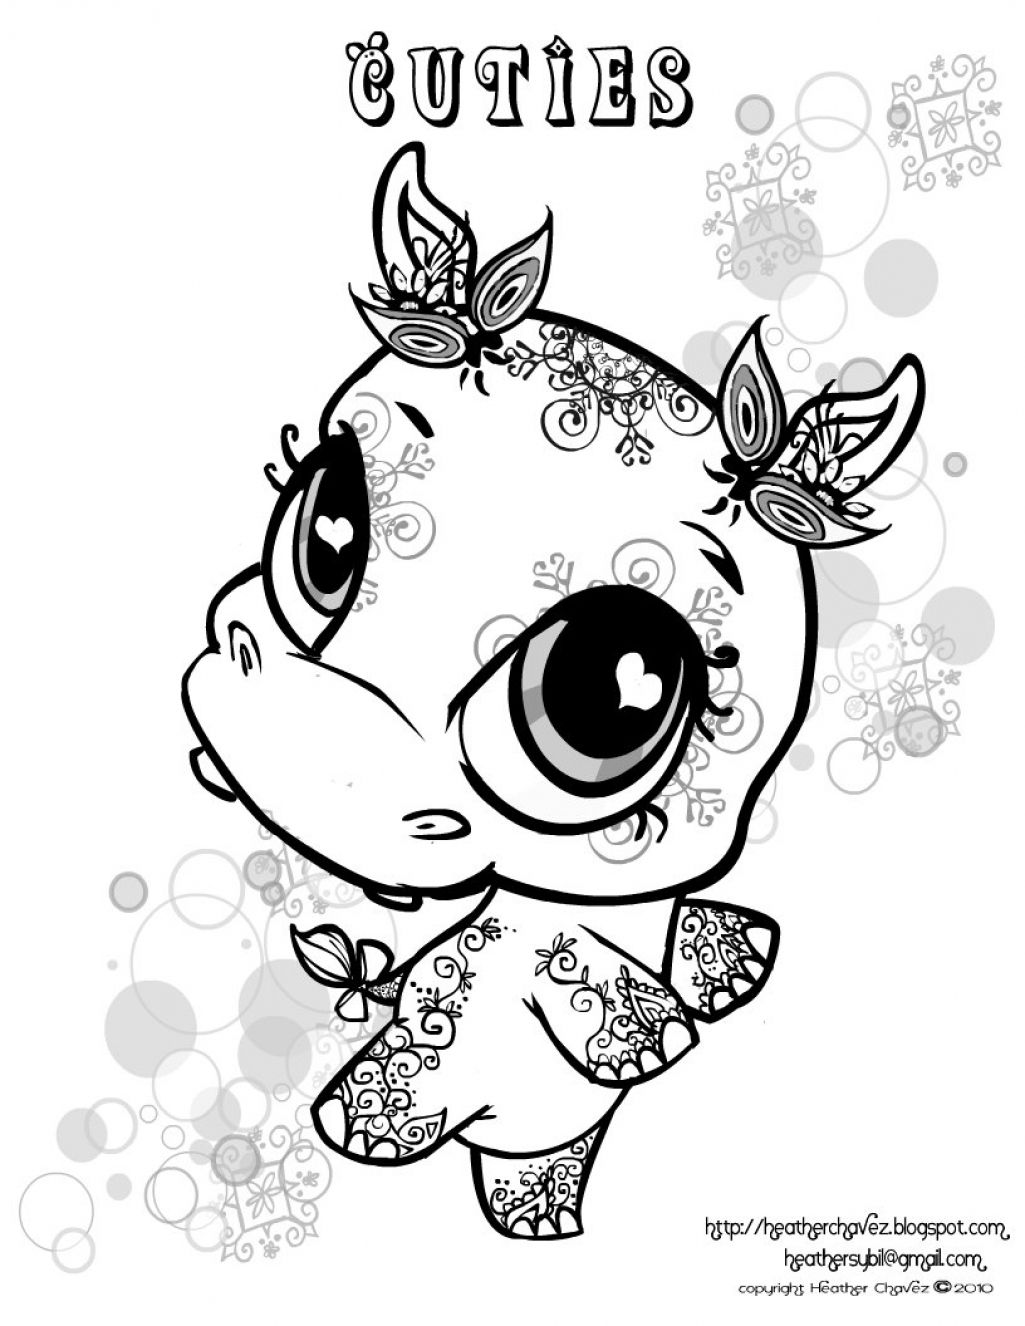 Free coloring pages littlest pet shop - Lps Christmas Coloring Pages Littlest Pet Shop Coloring Pages Lps